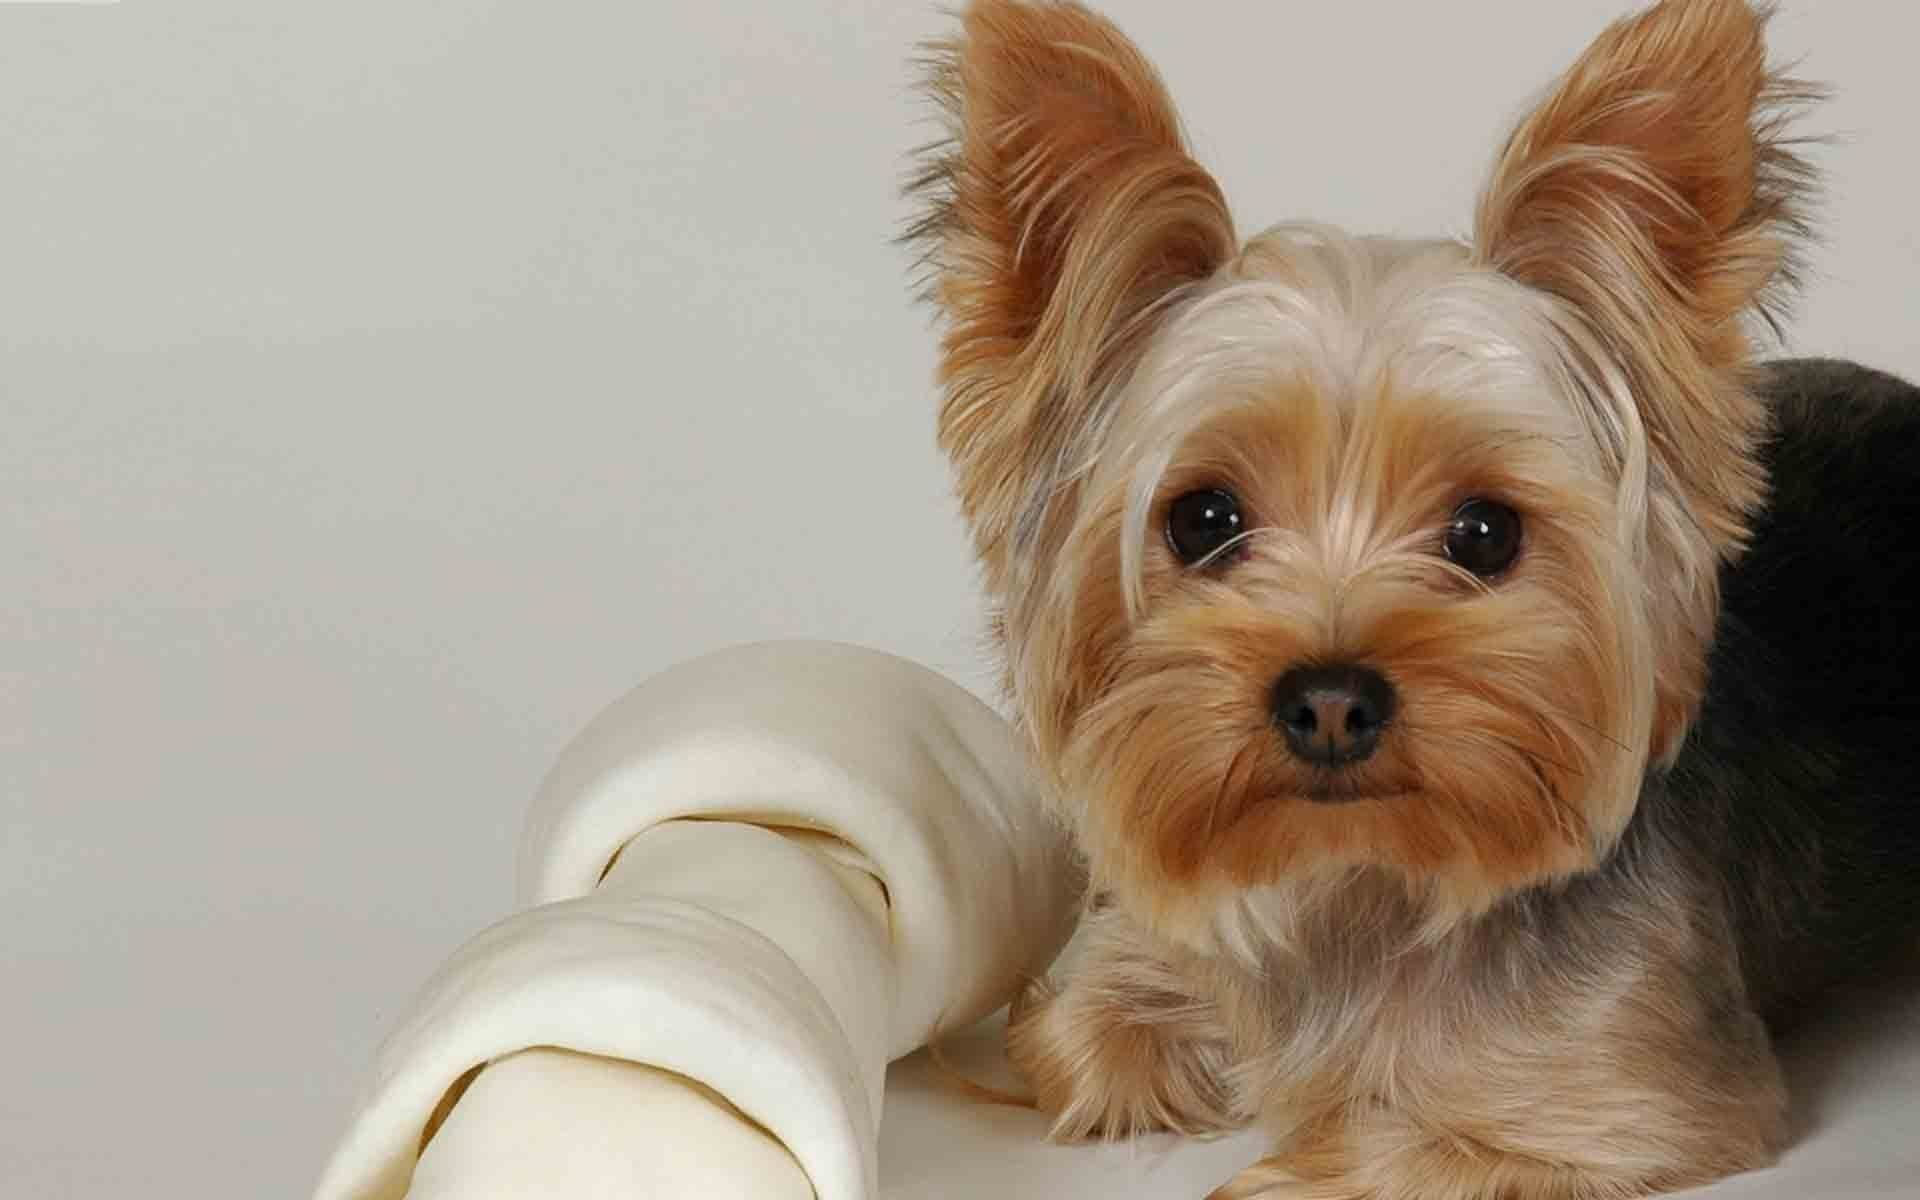 1920x1200 Chihuahua Yorkie Mix HD Wallpaper | Animals Wallpapers | Yorkie | Pinterest  | Animal wallpaper, Chihuahua mix and Animal